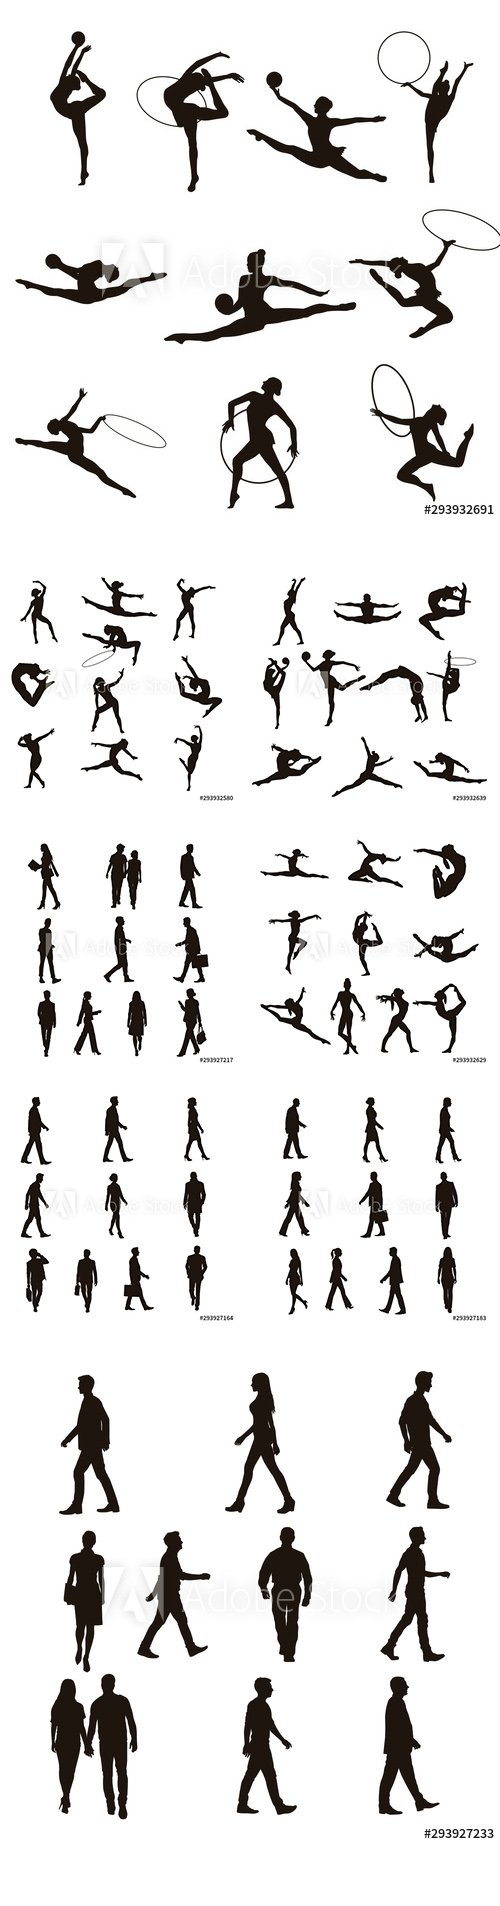 Gymnastic and People Walking Silhouettes